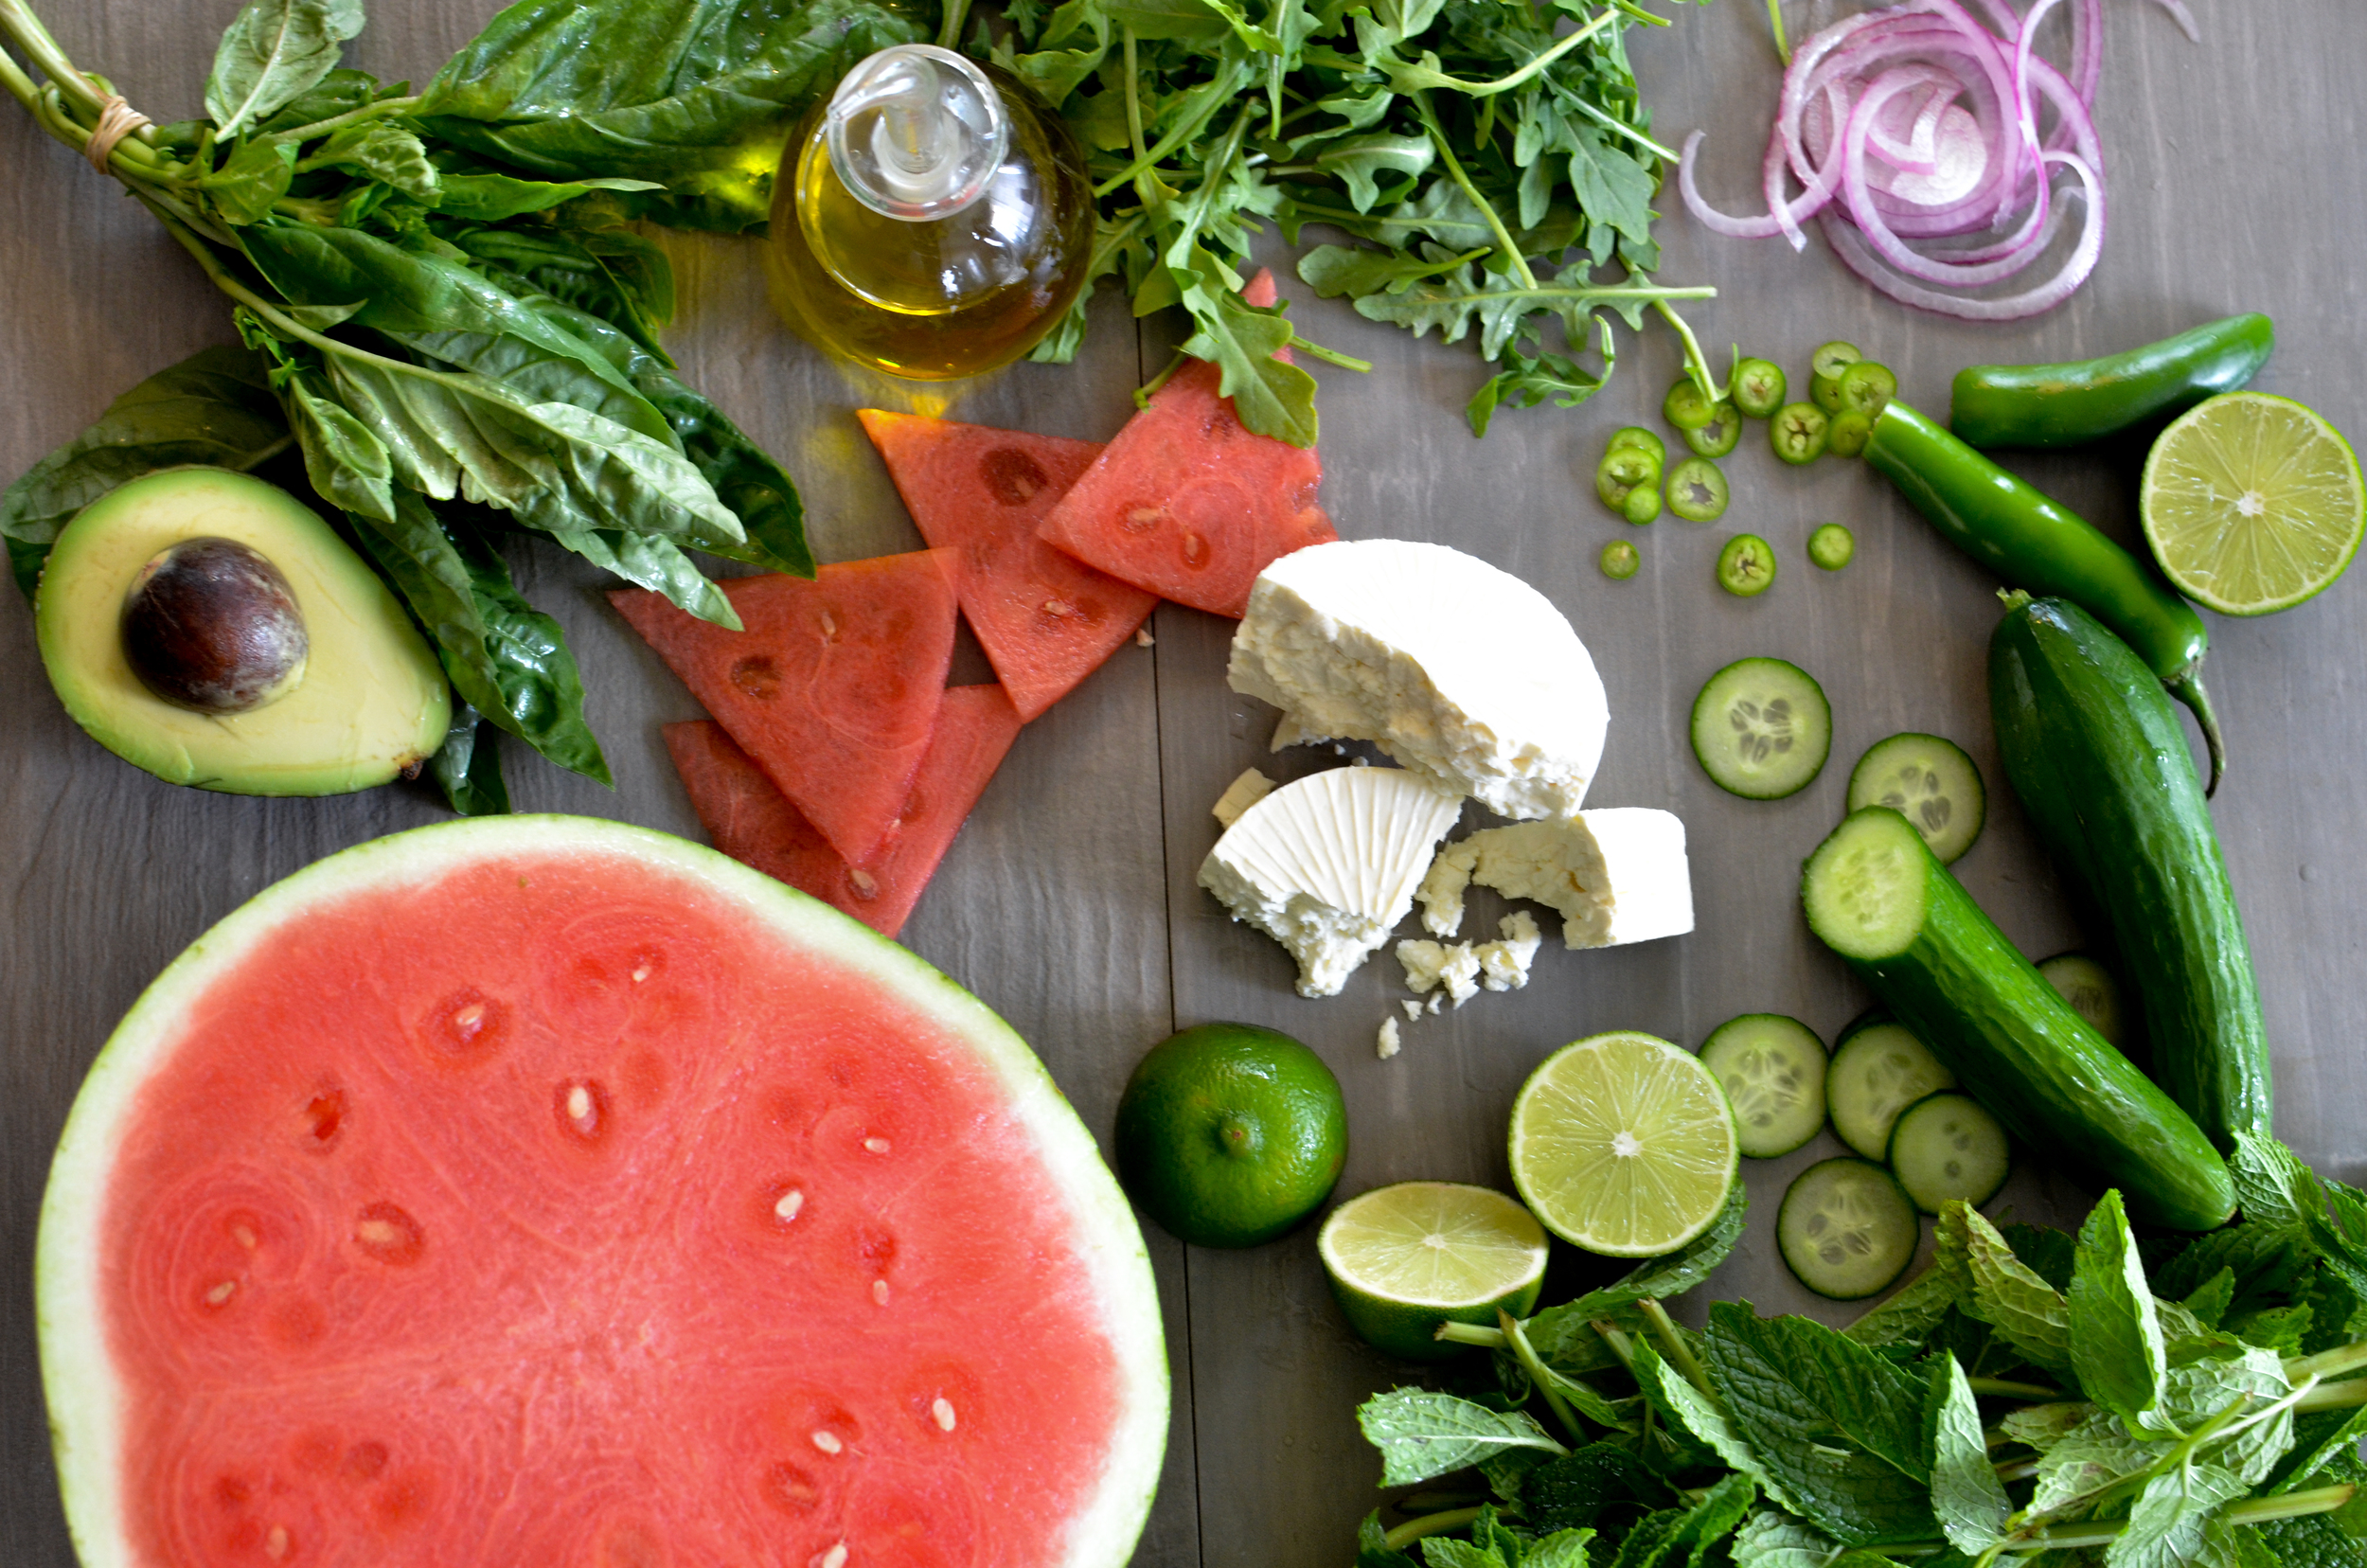 cc watermelon salad ingredients w oil avocado (1 of 1).jpg